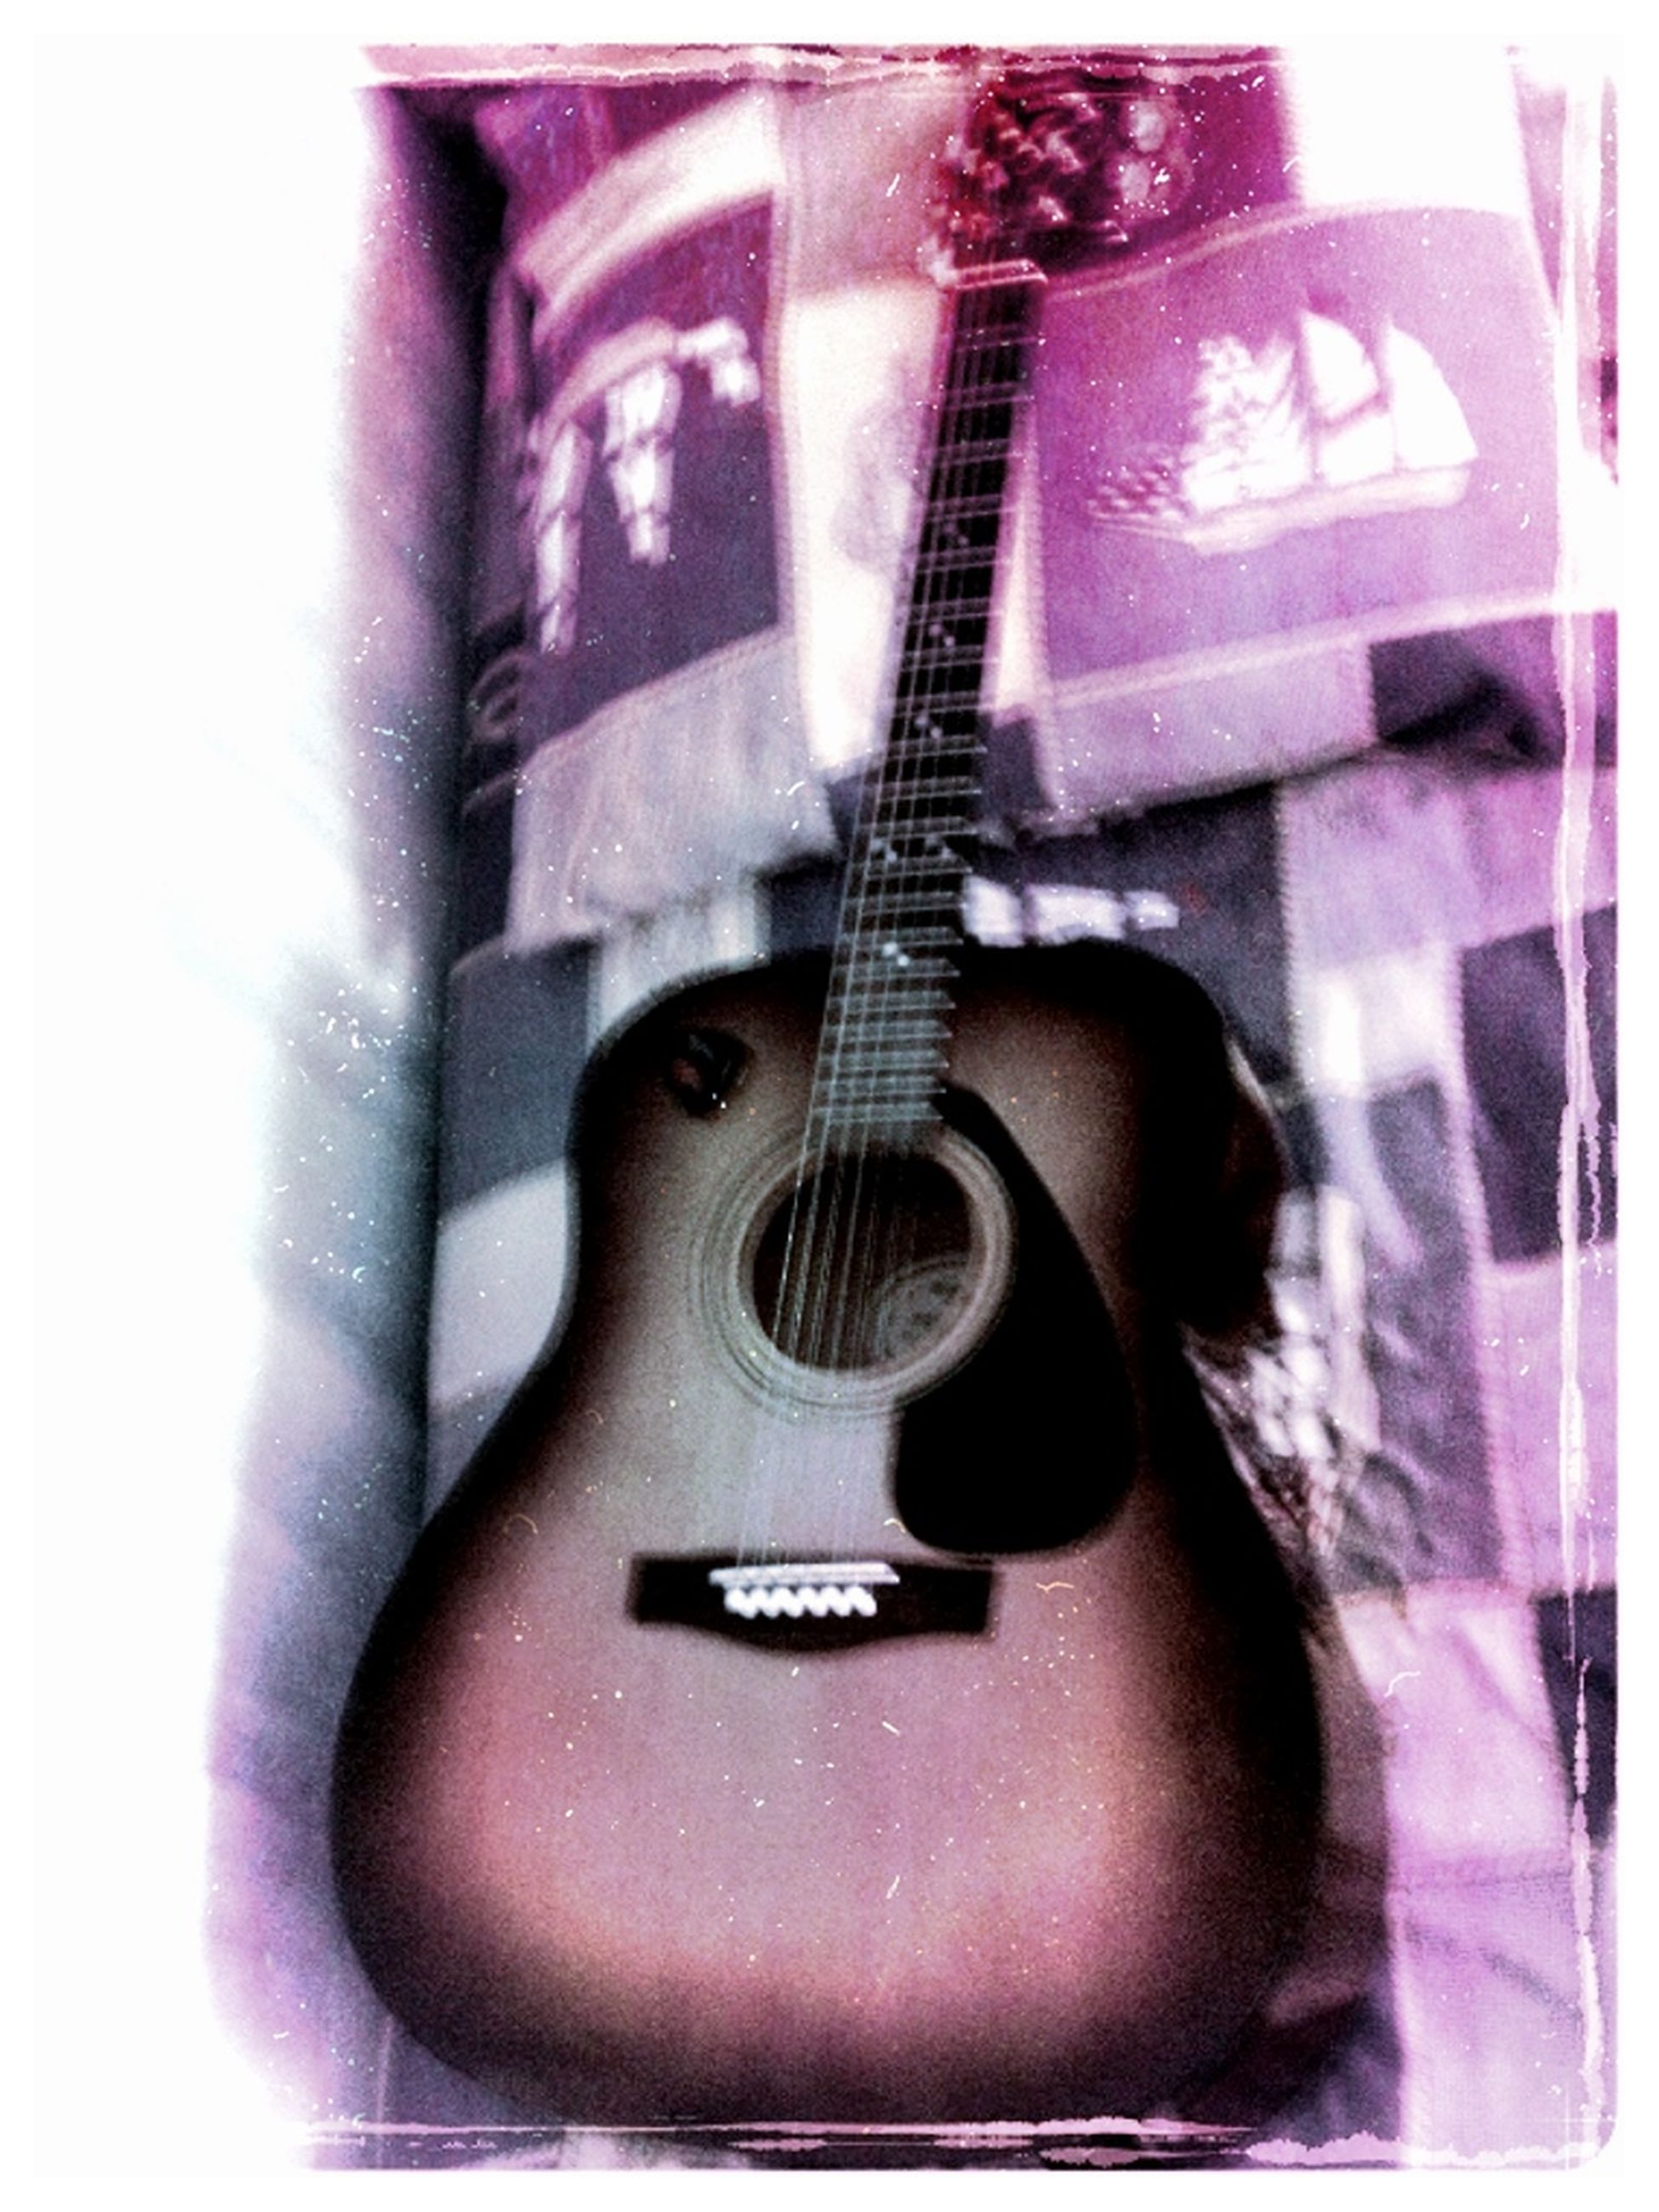 indoors, music, close-up, still life, arts culture and entertainment, musical instrument, fashion, technology, guitar, single object, musical equipment, auto post production filter, musical instrument string, high angle view, man made object, old-fashioned, leather, transfer print, connection, shoe